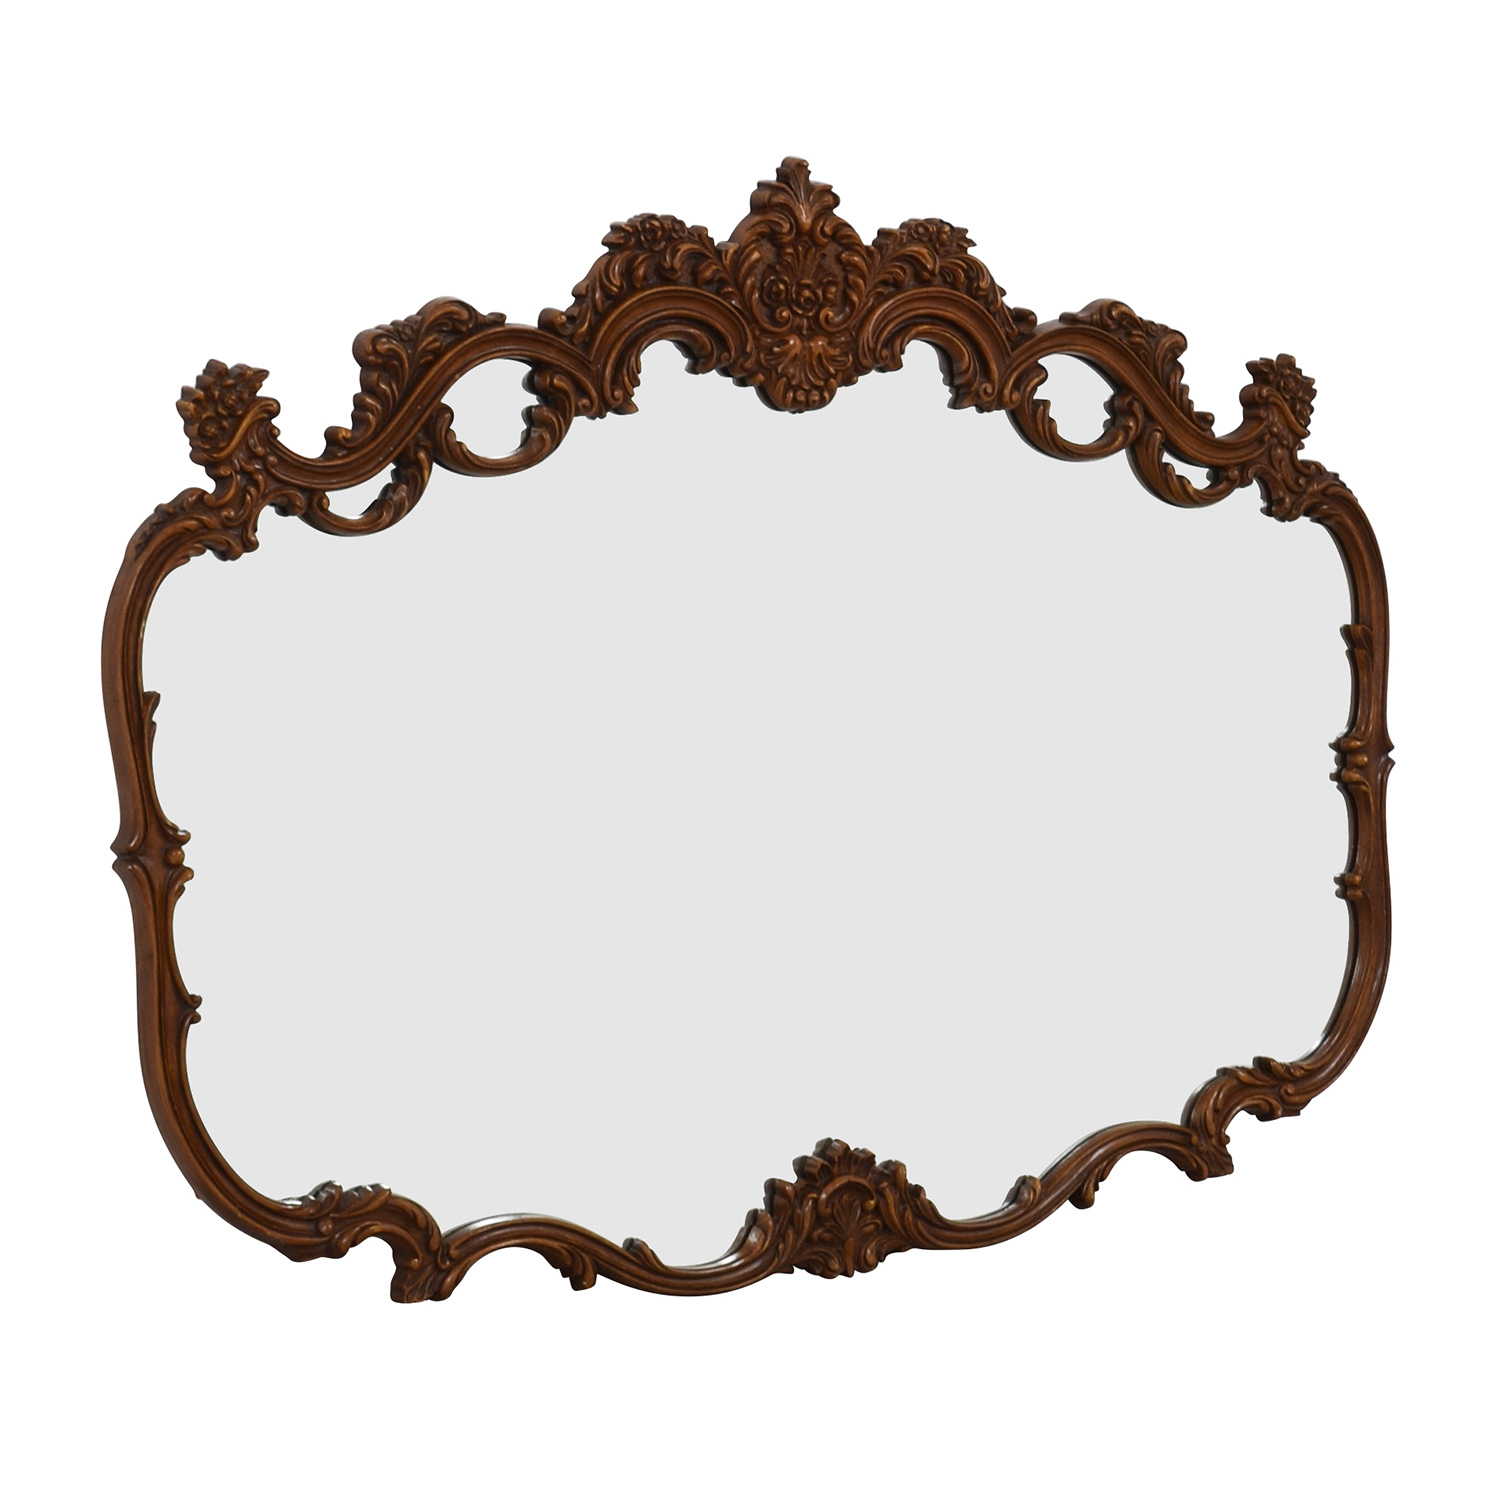 Wood Carved Mirror Decor